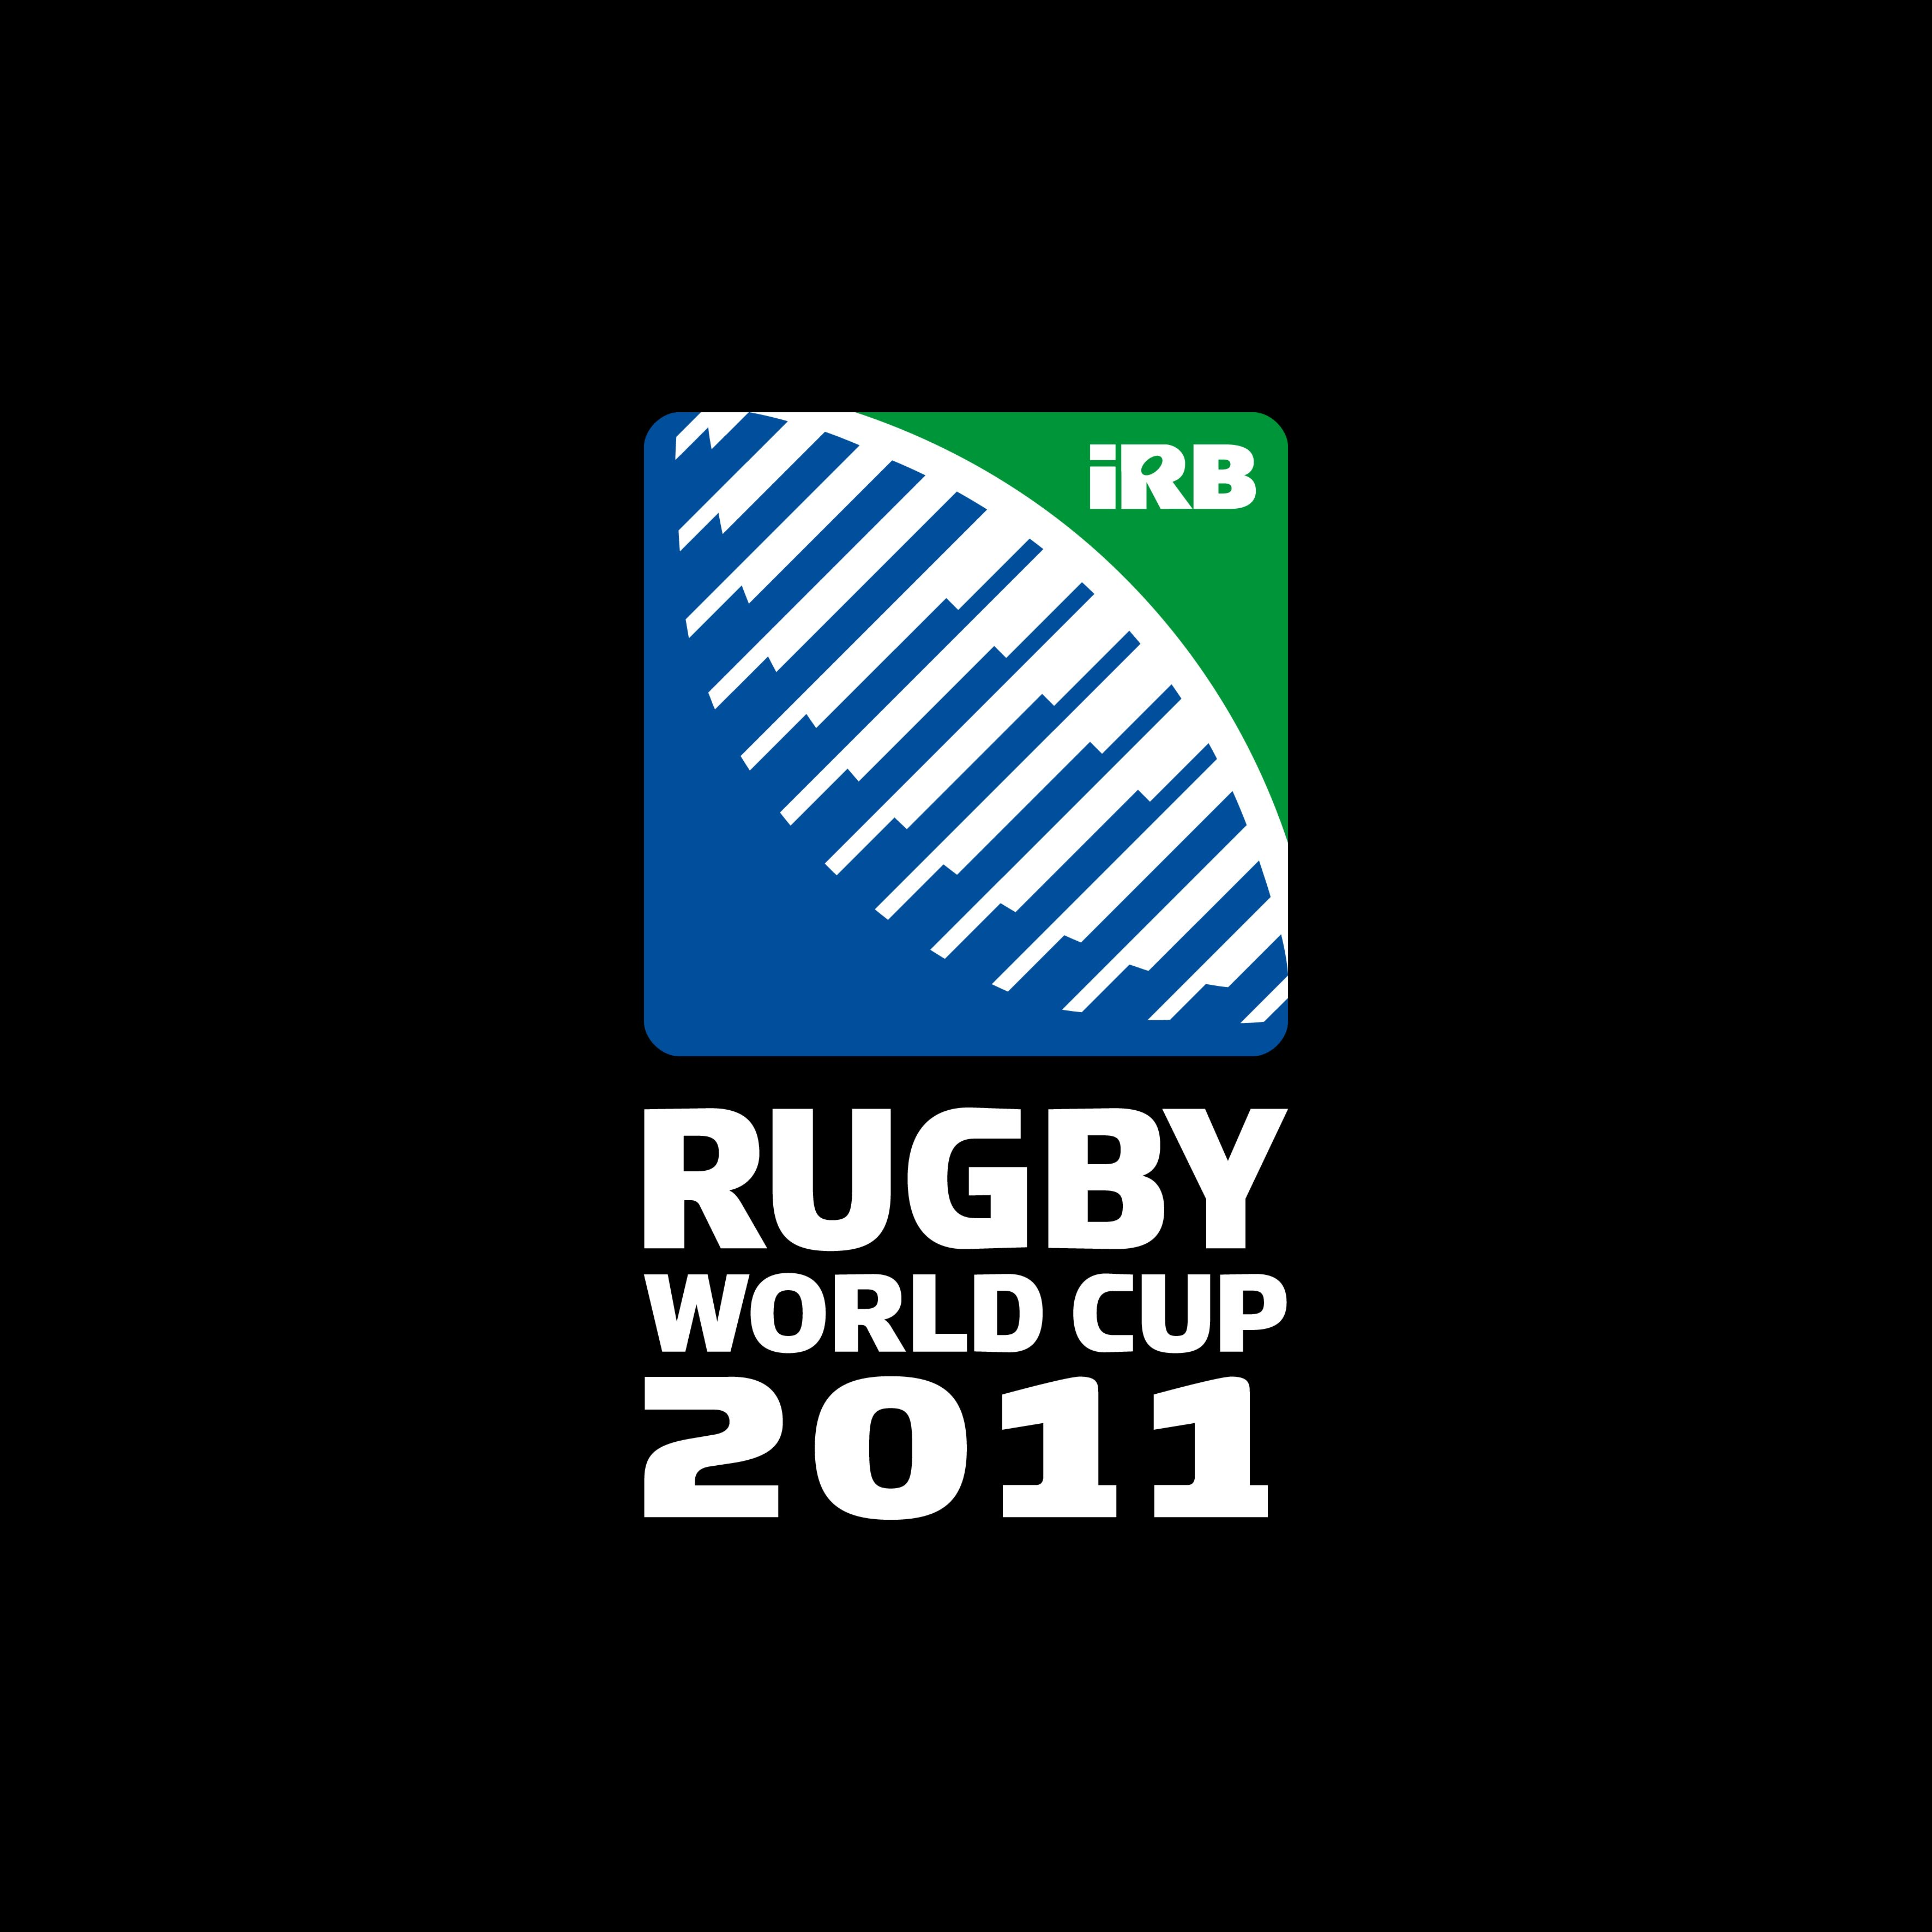 Box art - Rugby World Cup 2011